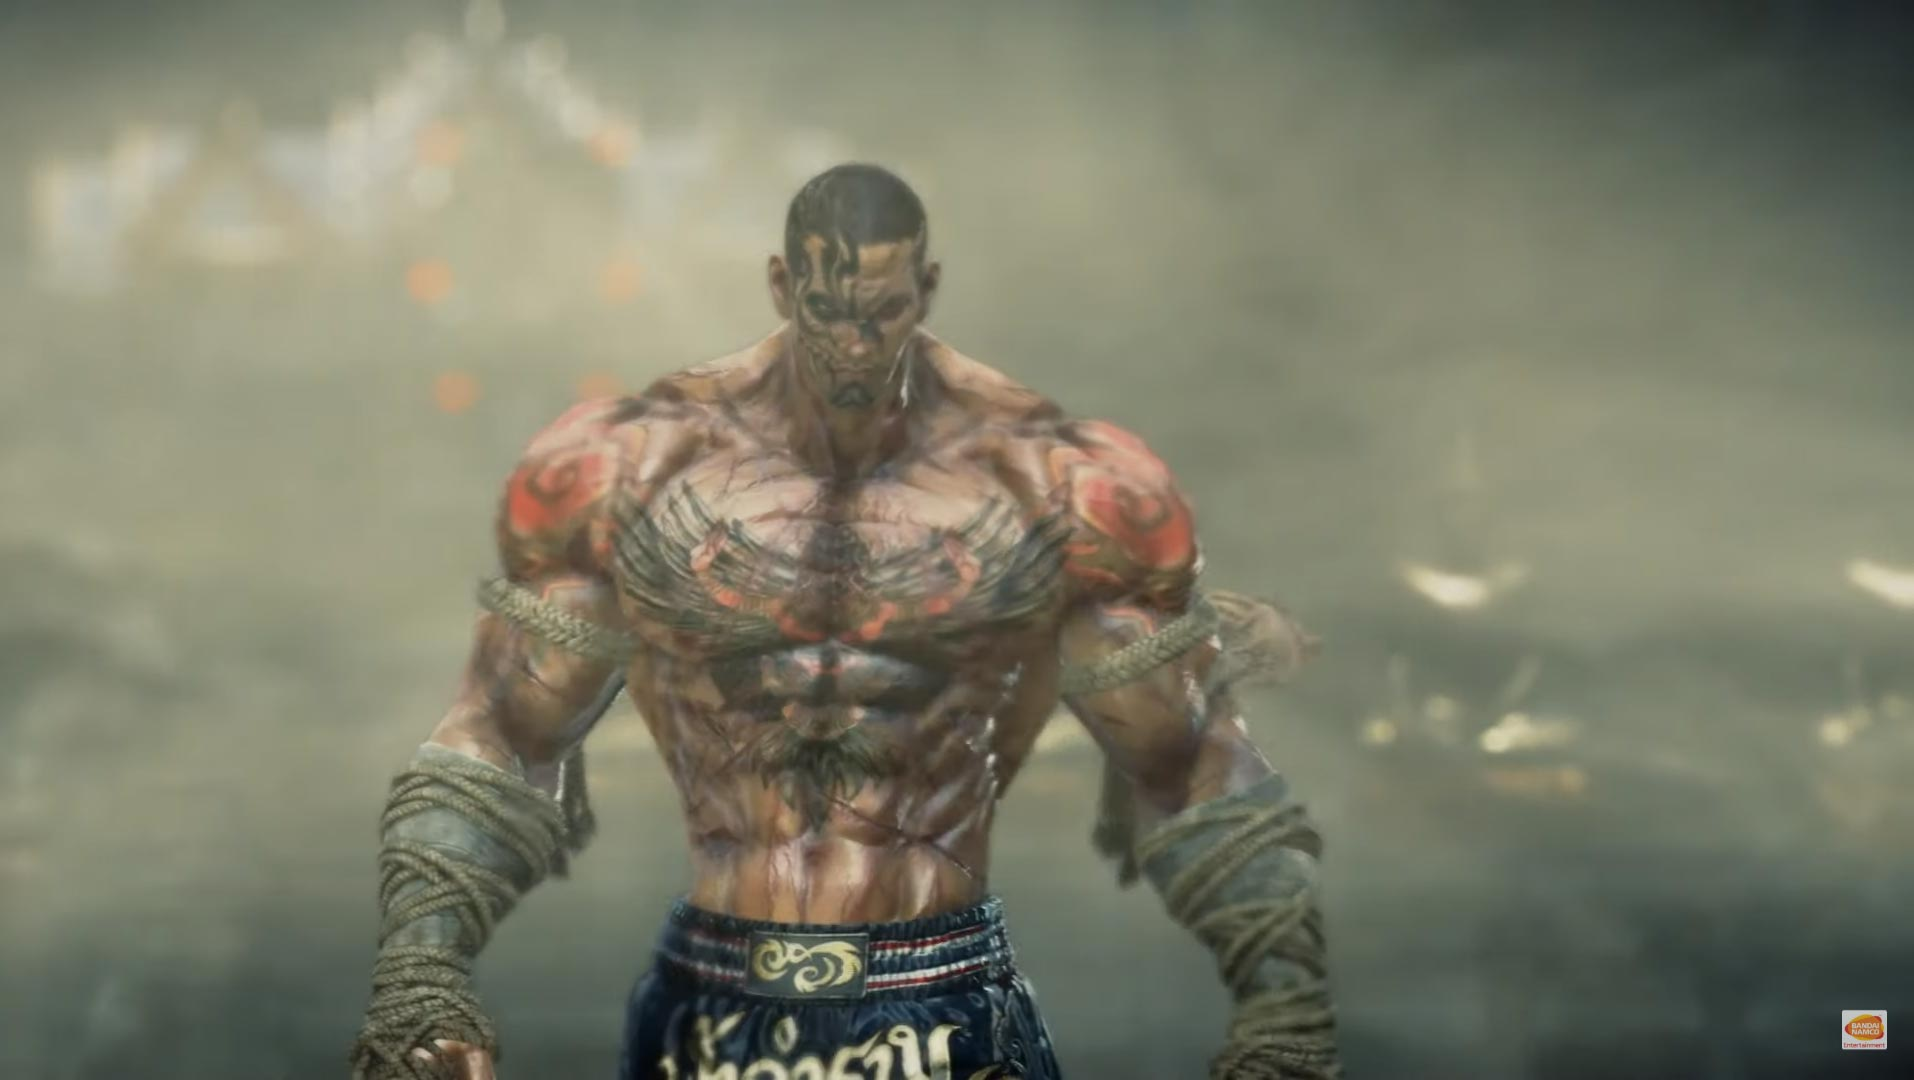 Leroy Smith Gameplay And Ganryu Trailers Released For Tekken 7